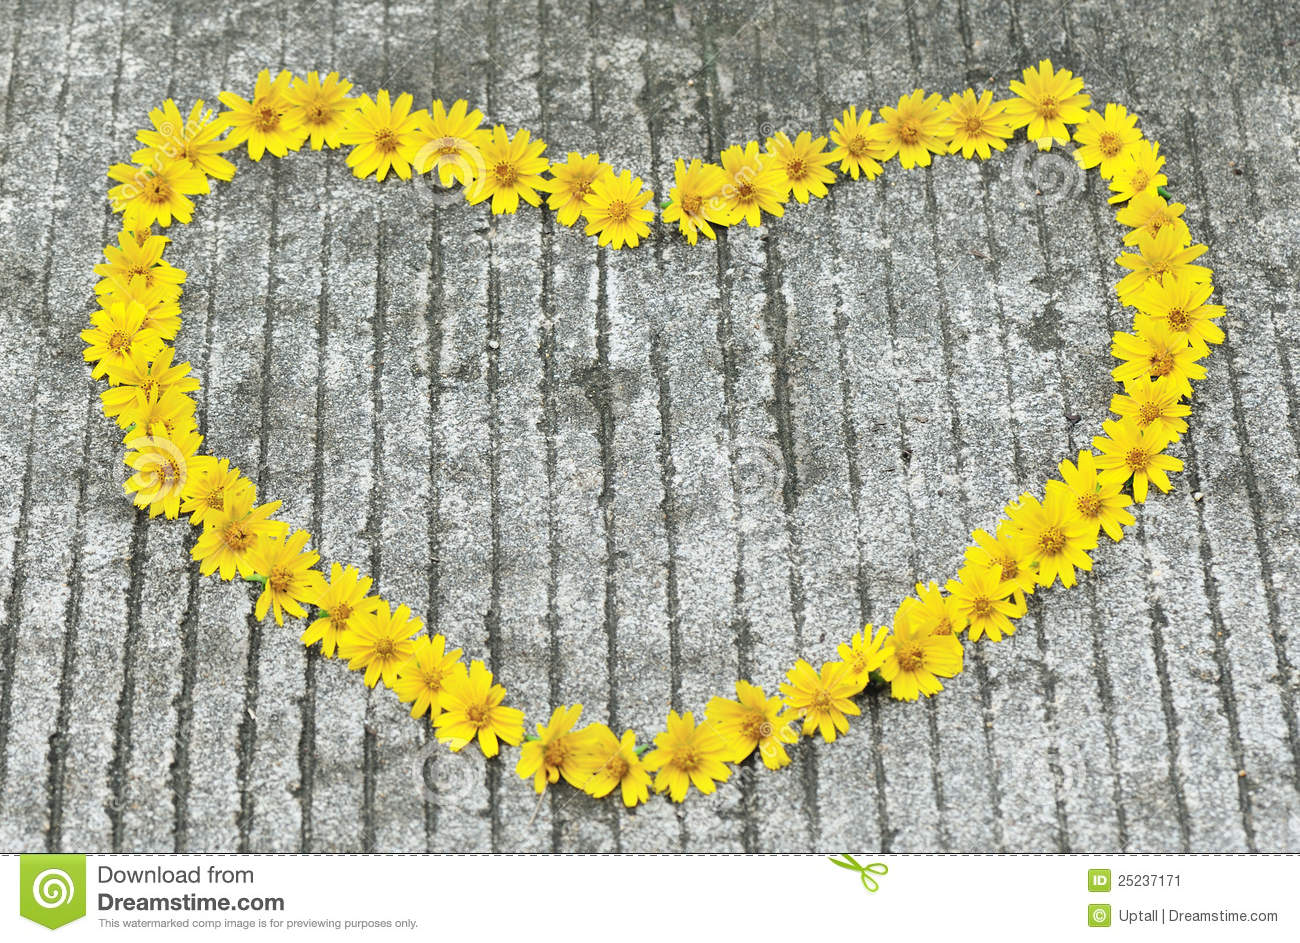 Yellow flowers in heart shape stock image image of petal wild download yellow flowers in heart shape stock image image of petal wild 25237171 mightylinksfo